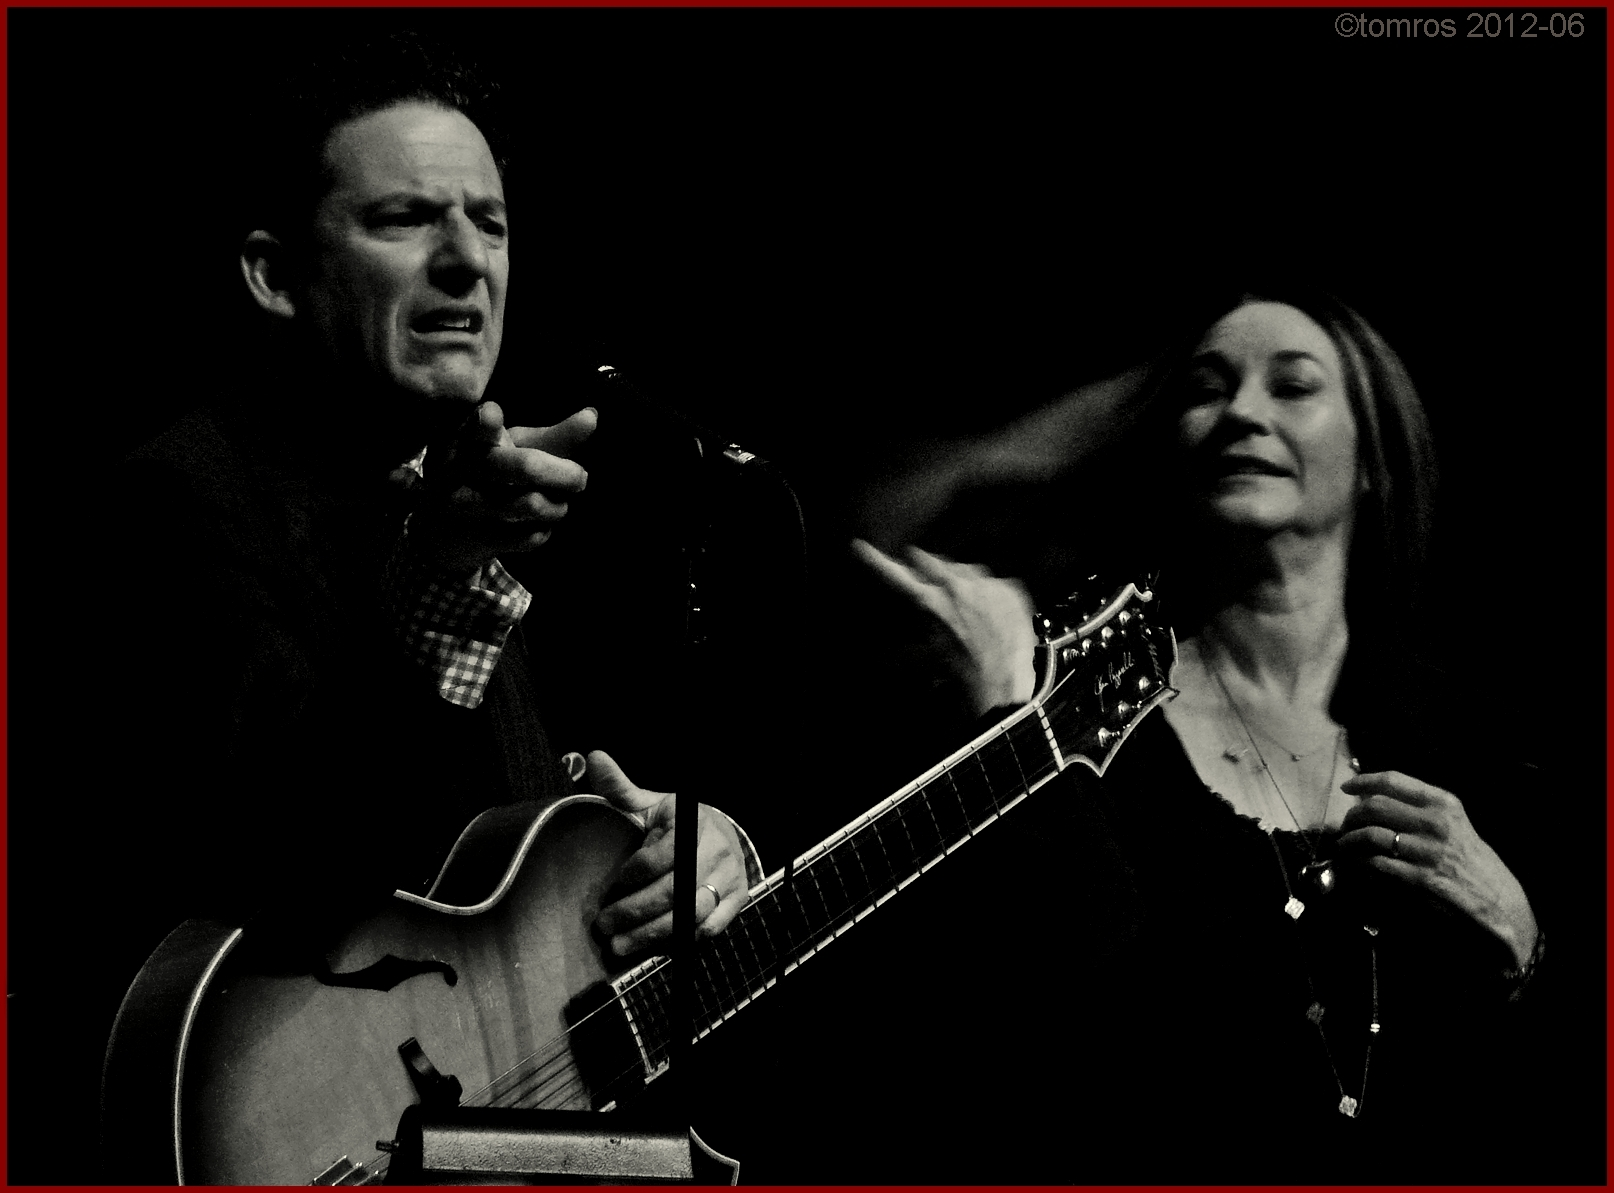 John Pizzarelli & Jessica Molaskey at Koerner Hall, June, 2012